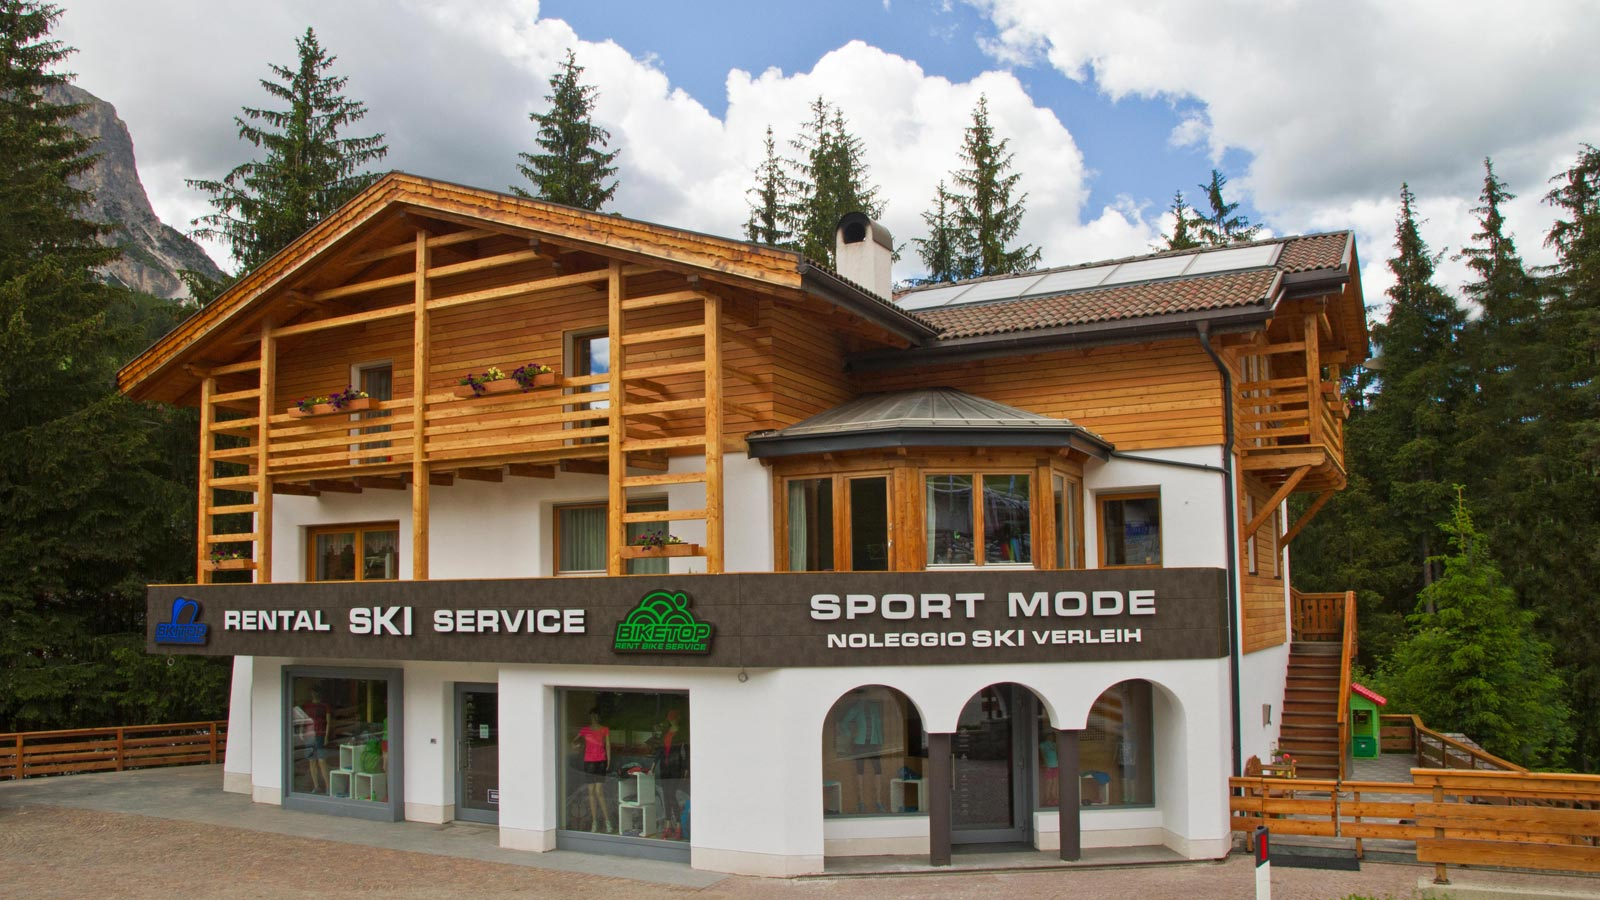 The front of the bike rental shop in Badia